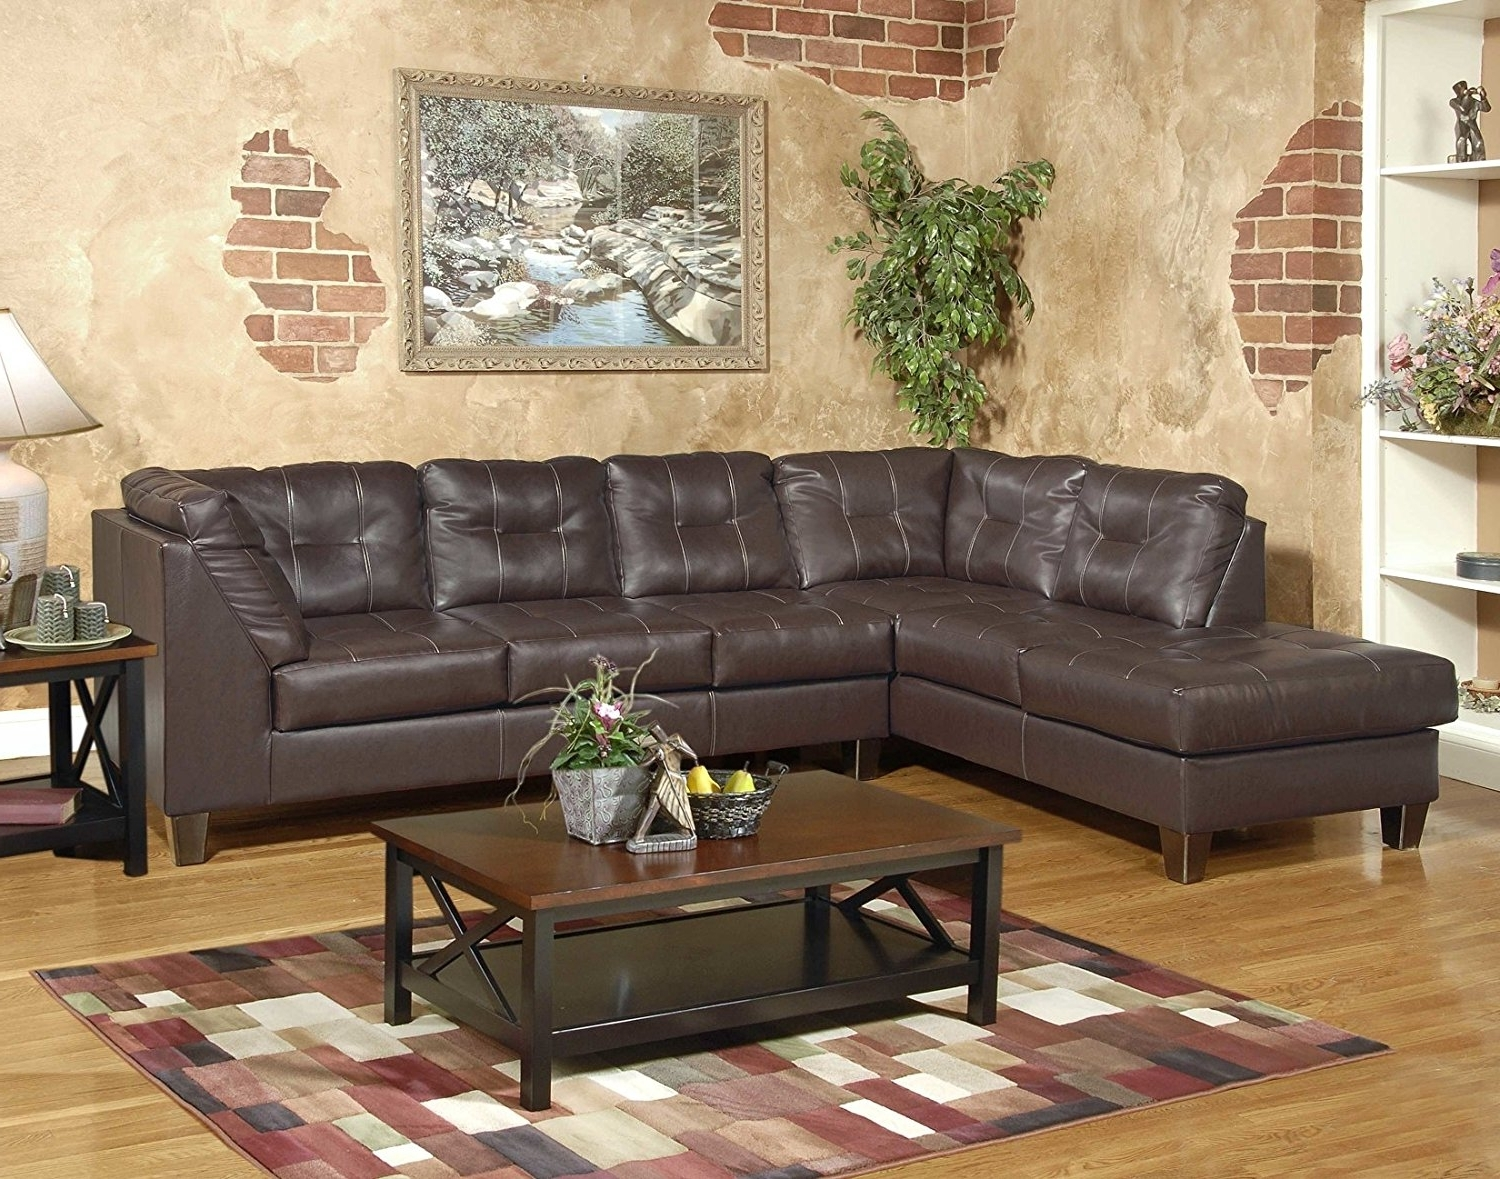 Fashionable Amazon: Roundhill Furniture Marinio Chocolate Faux Leather With Sectional Sofas In Greensboro Nc (View 3 of 15)